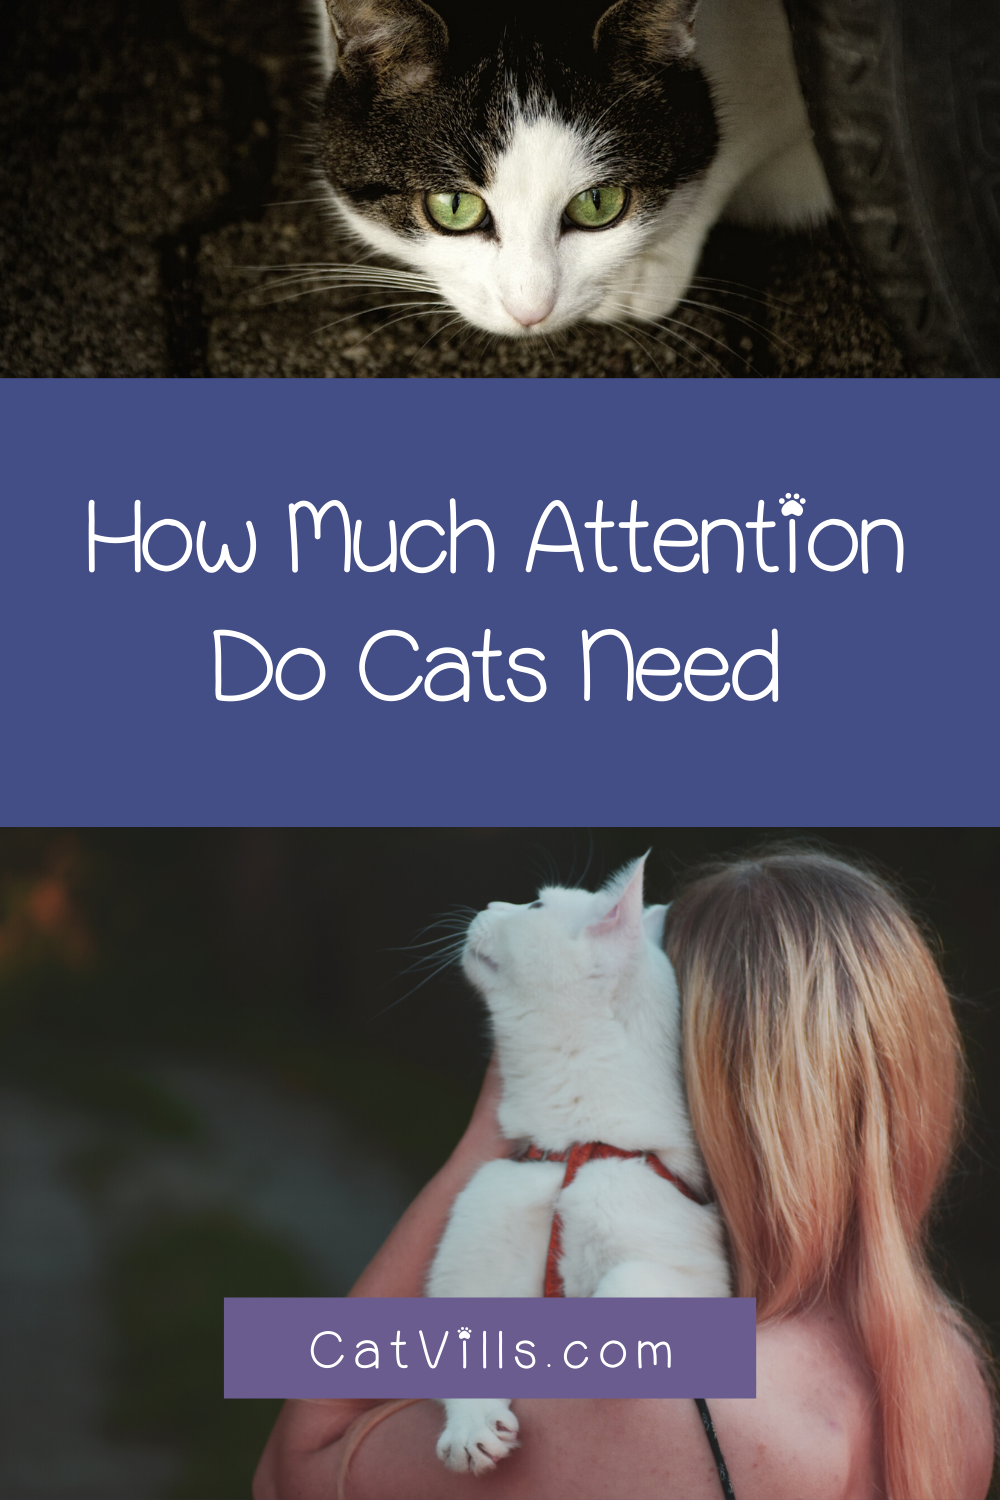 5 Signs Your Cat Needs More Attention Cats Cat Behavior Indoor Pets